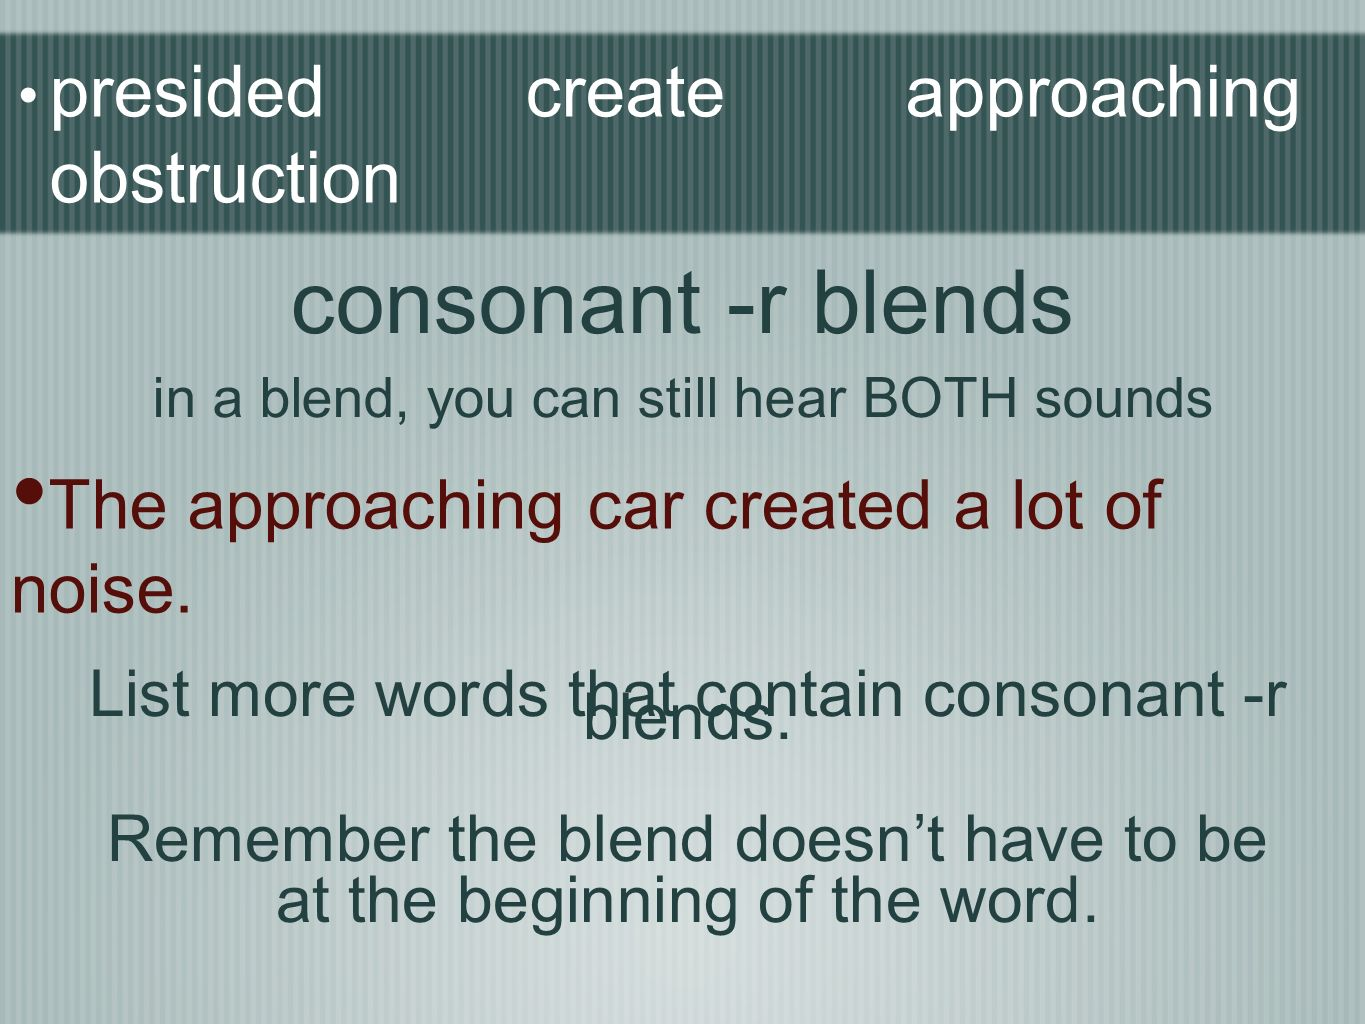 presided create approaching obstruction The approaching car created a lot of noise. consonant -r blends in a blend, you can still hear BOTH sounds Lis